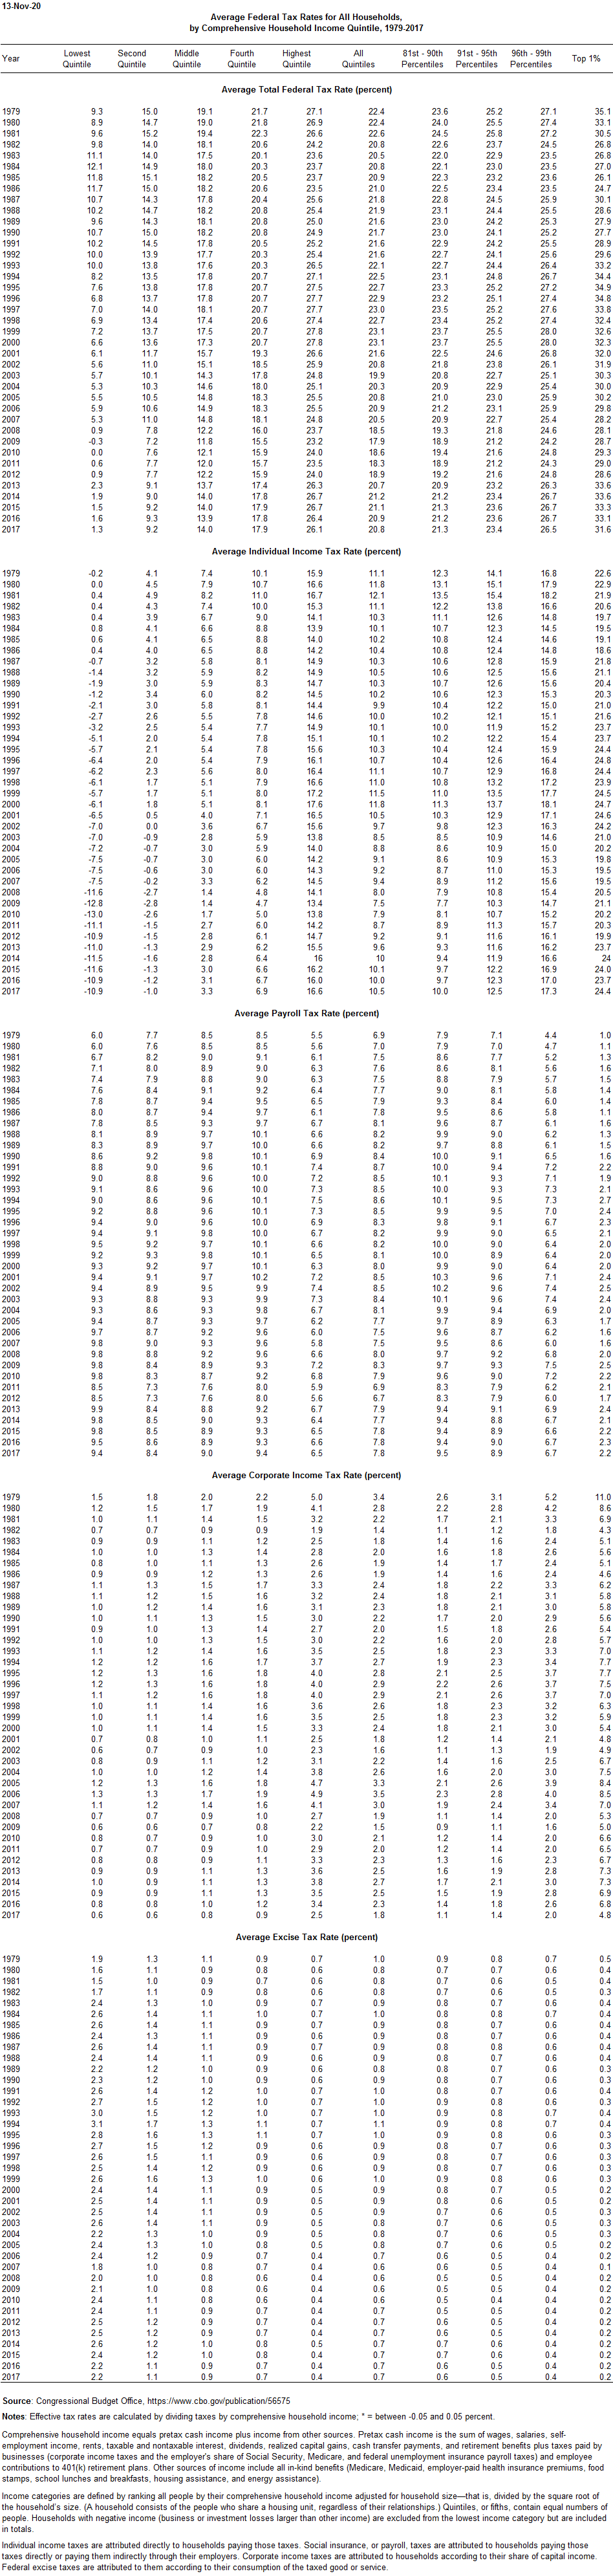 Average federal tax rates for all households